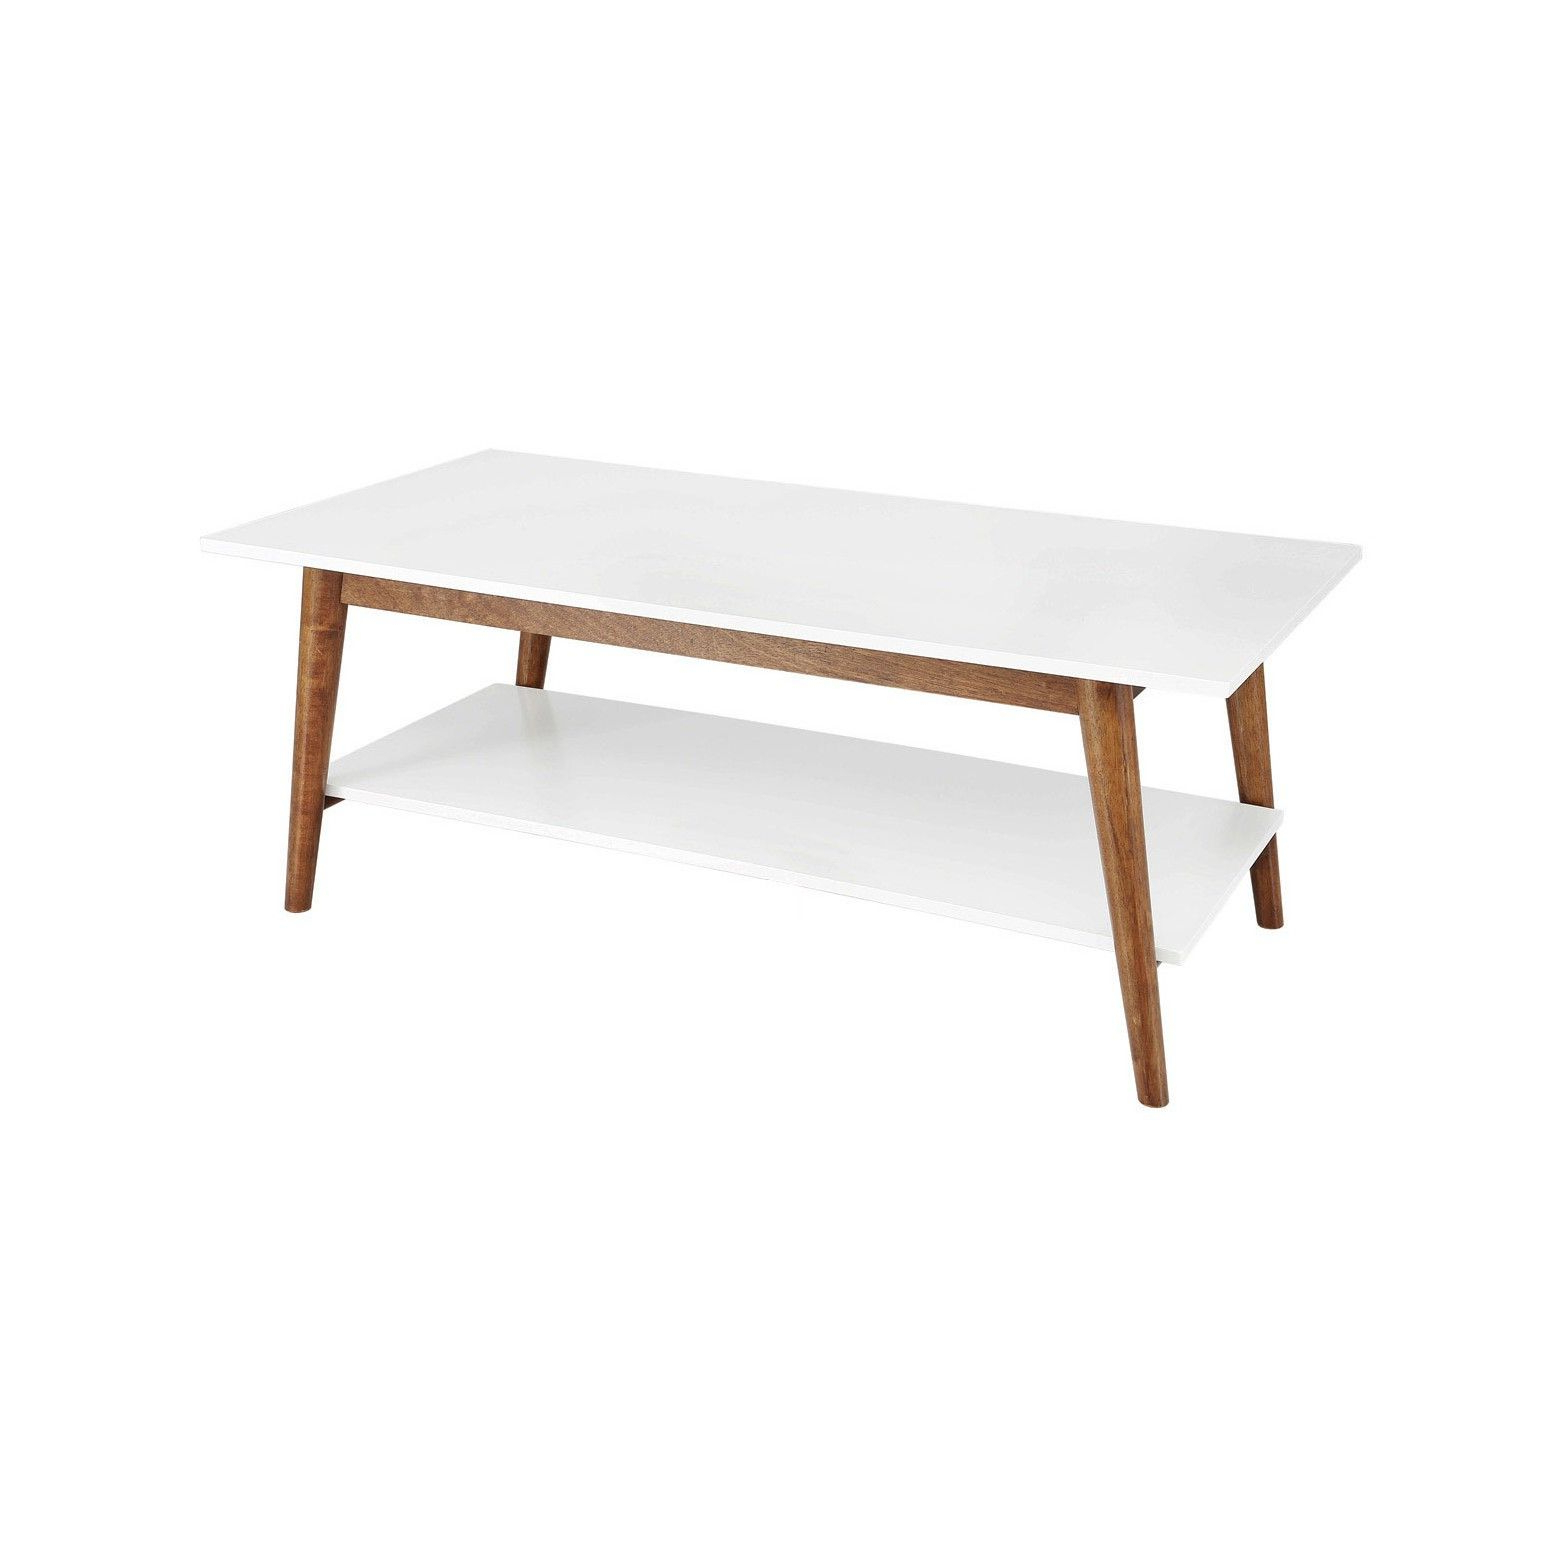 2019 Madison Park Avalon White Pecan Coffee Tables Regarding Amherst Mid Century Modern Two Tone Coffee Table White (View 15 of 20)